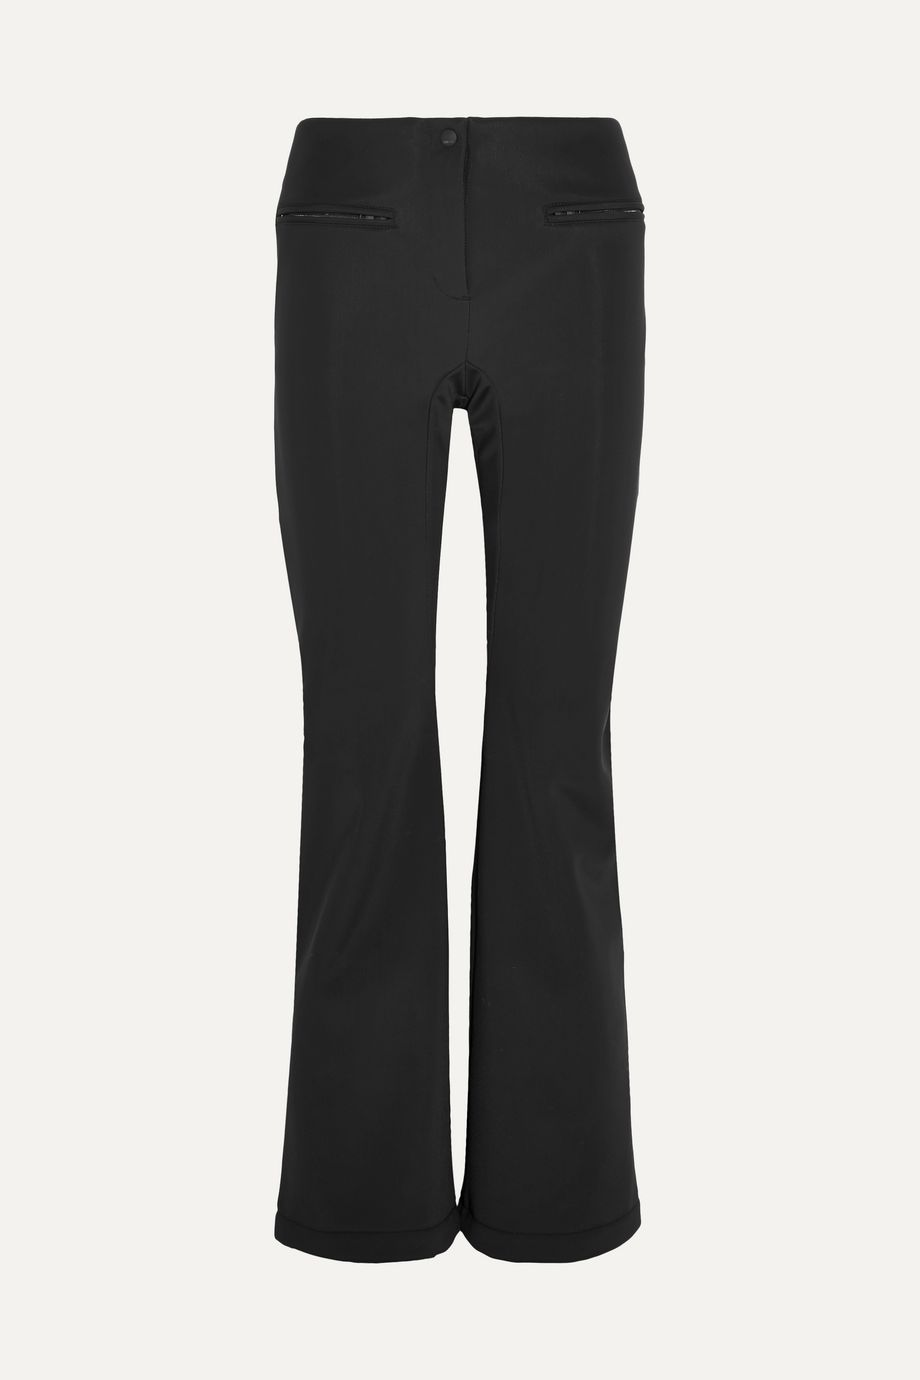 Fendi Roma striped ski pants